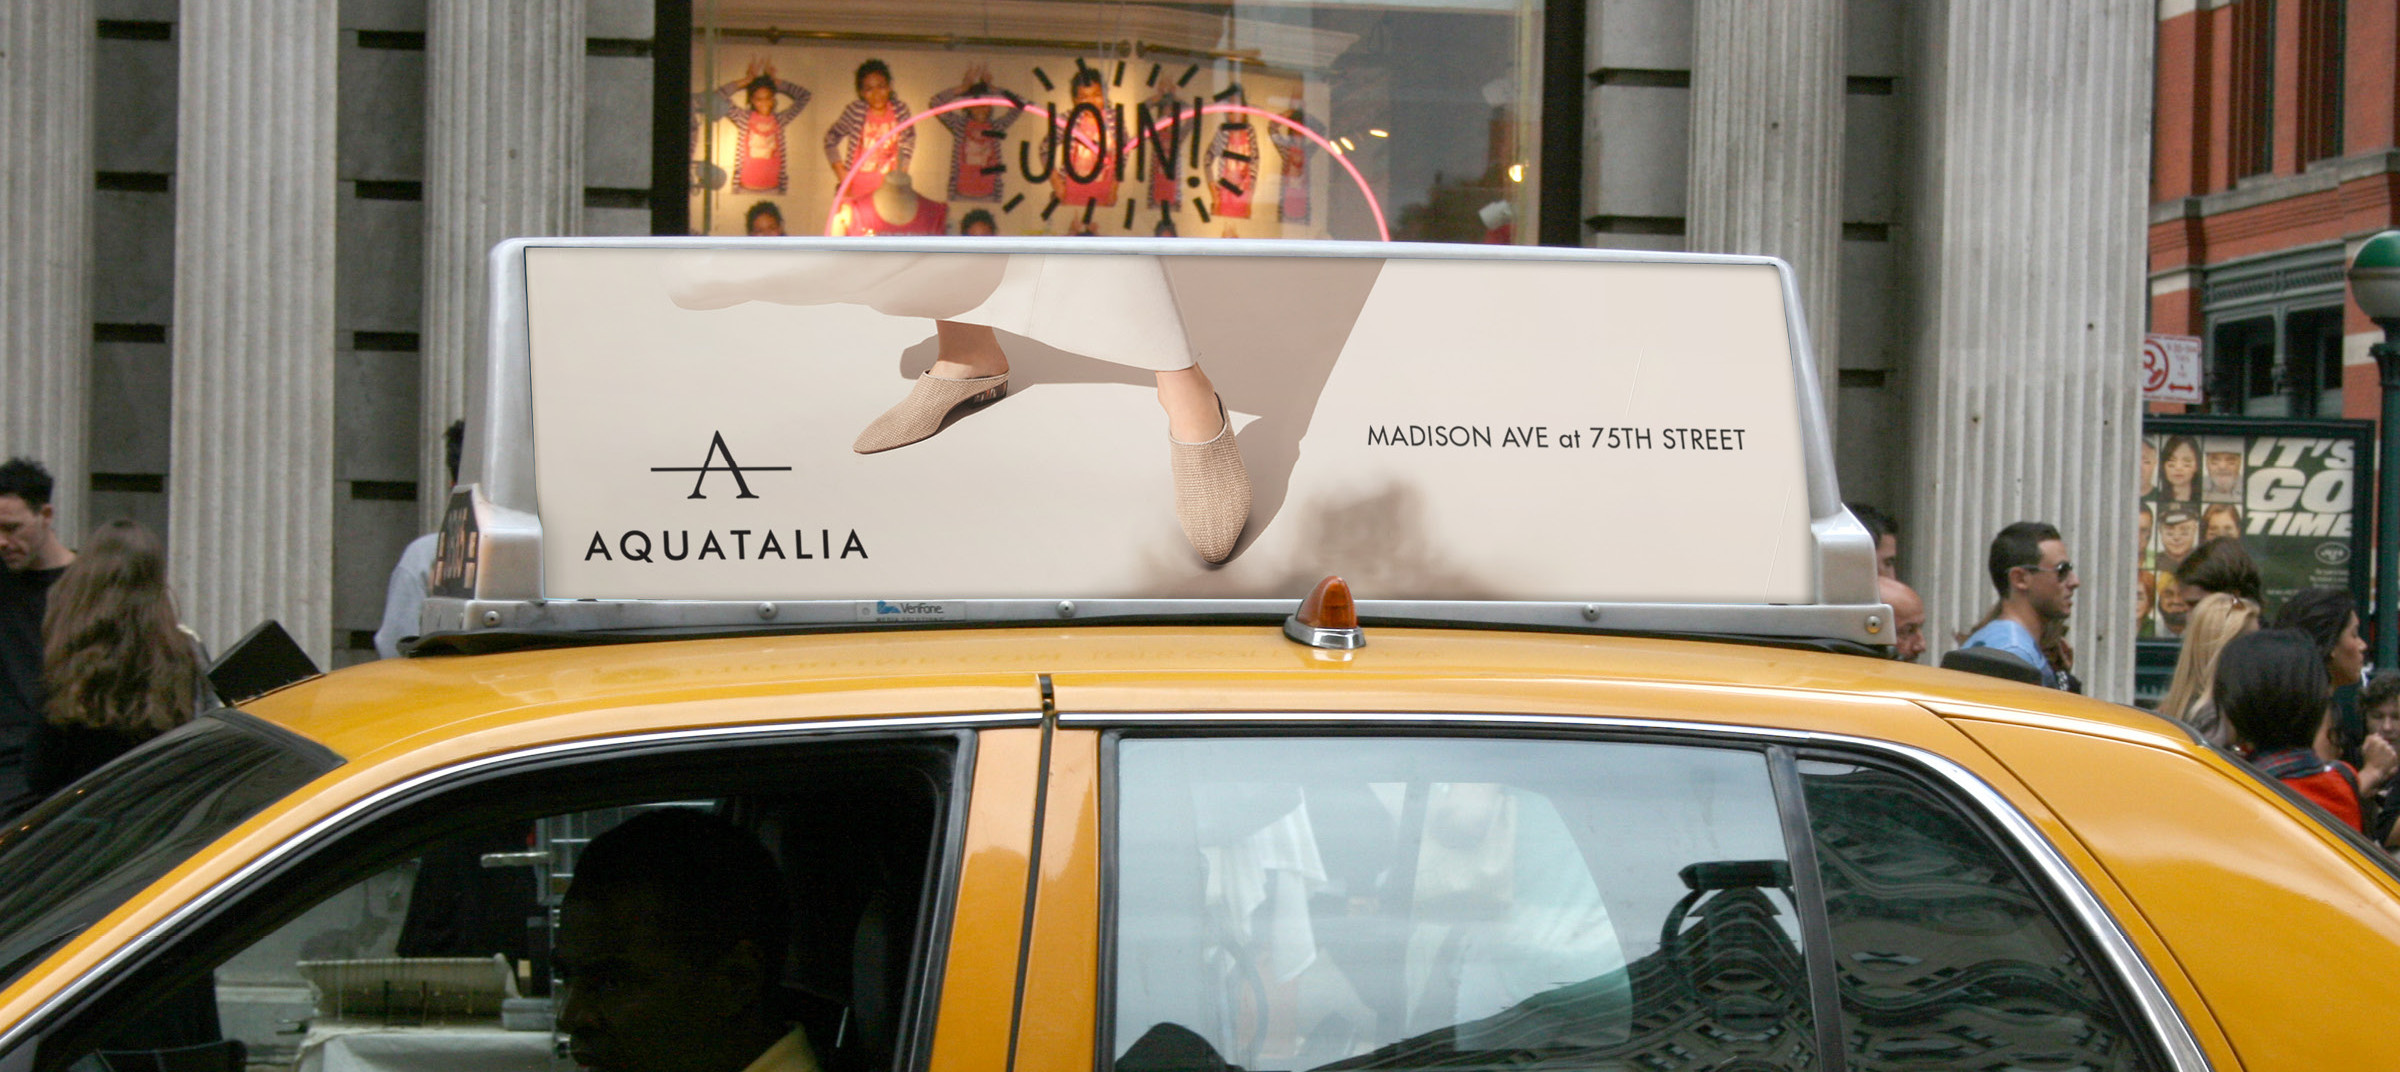 Out of home campaigns created by DTE for Aquatalia on yellow cab